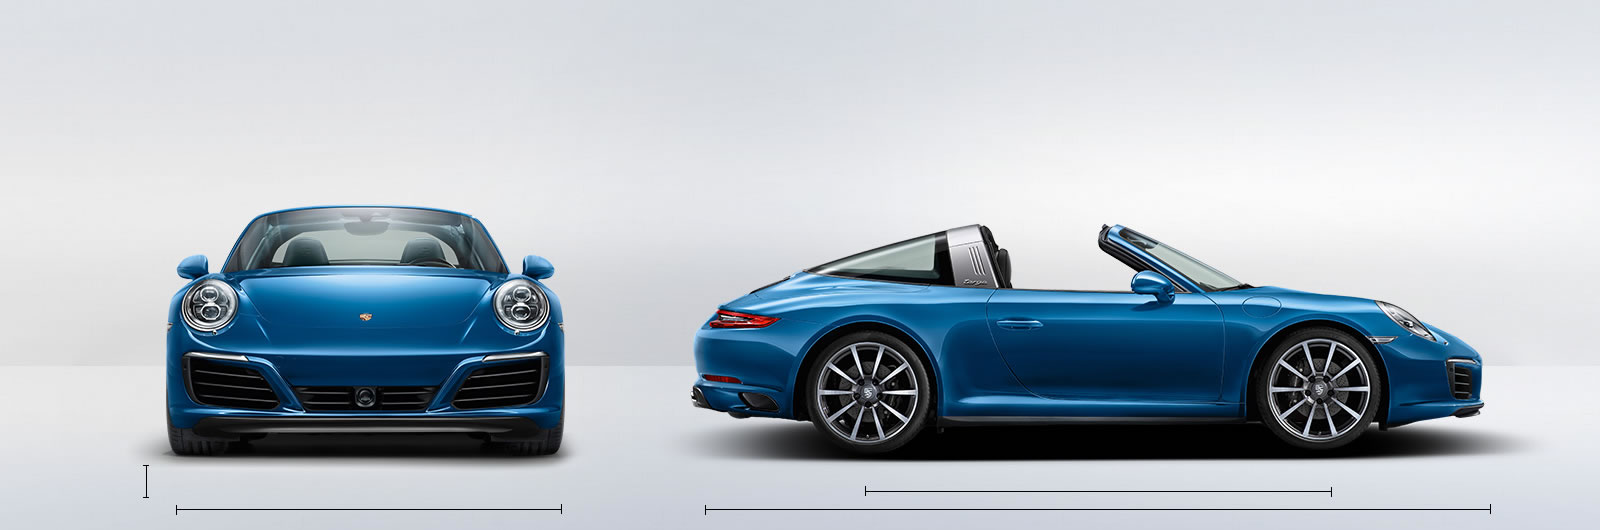 911 Targa 4 Specifications